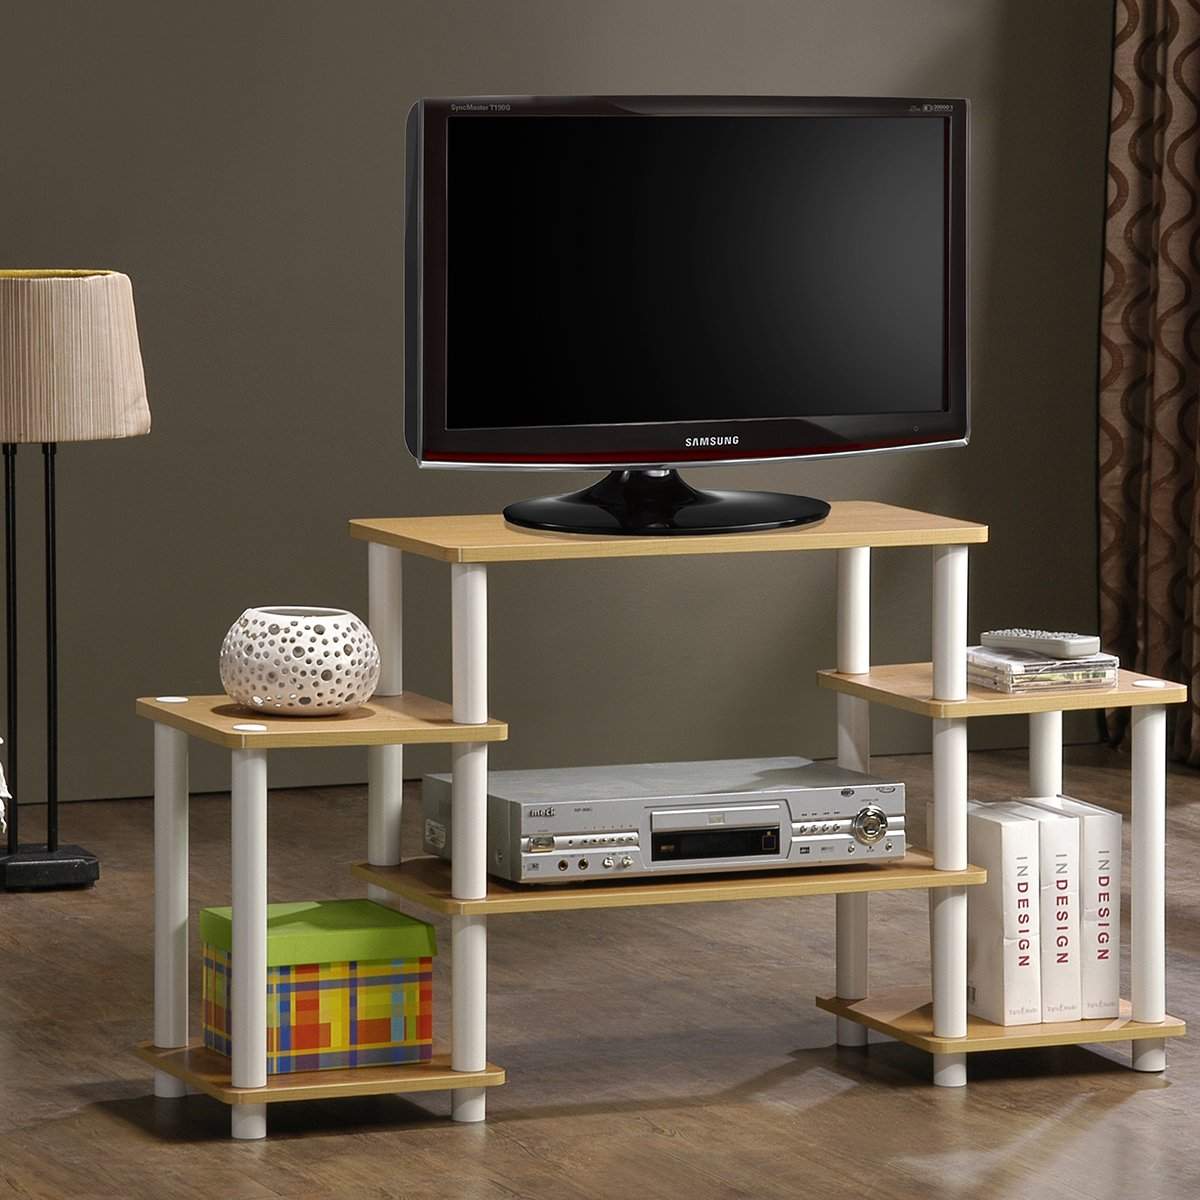 Furinno 11257BK/GY Turn-N-Tube No Tools Entertainment TV Stands, Black/Grey